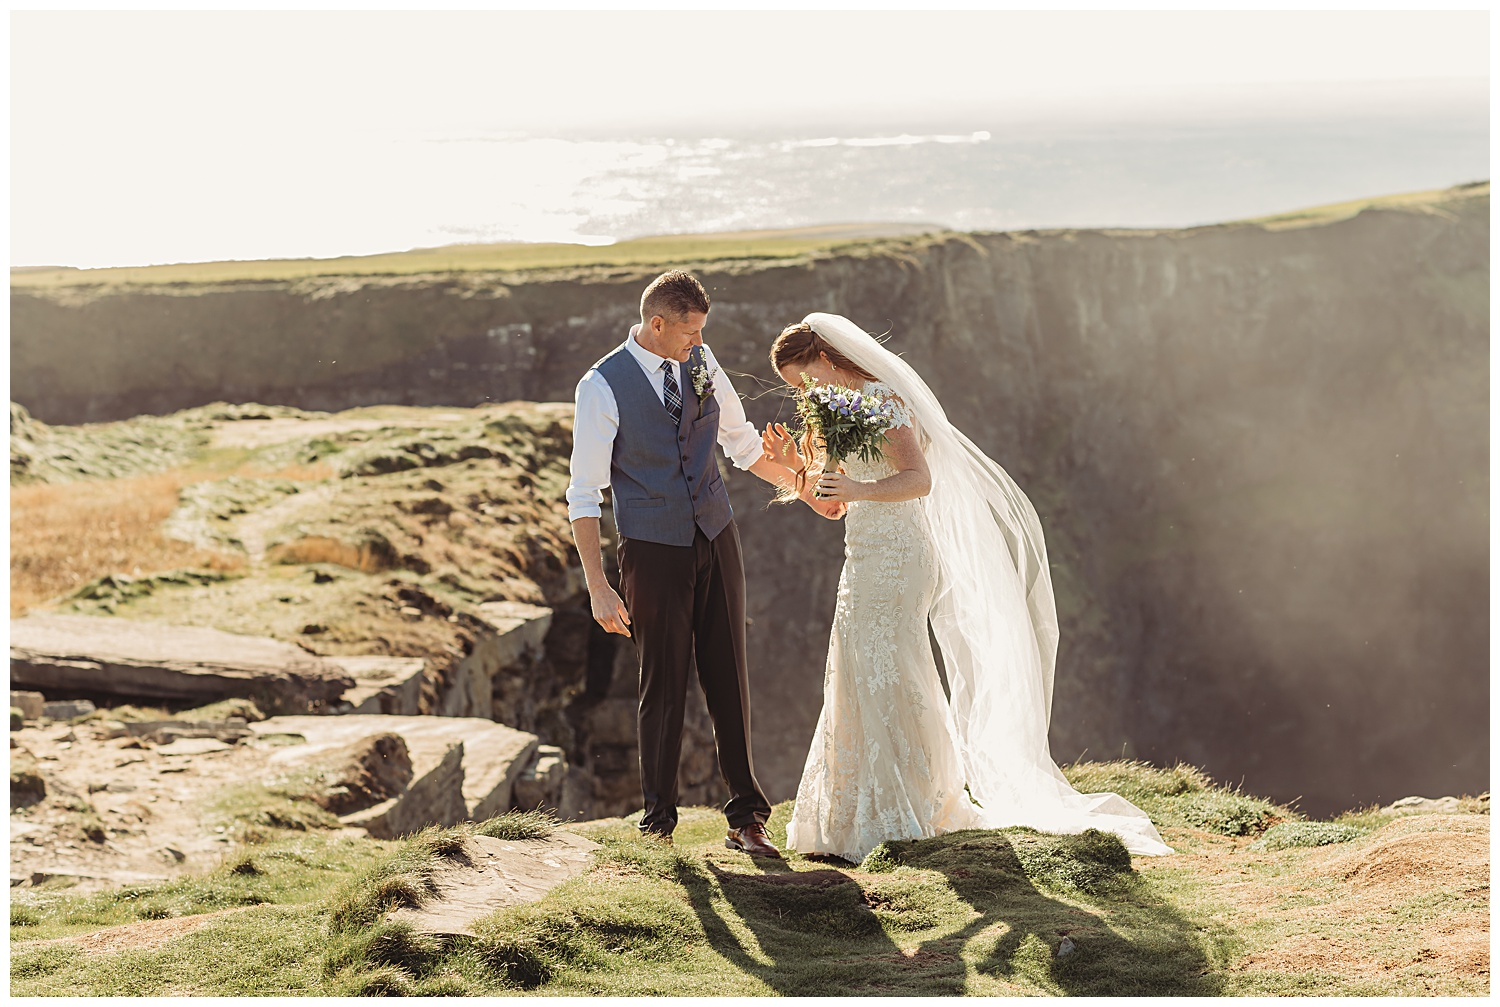 The Cliffs of Moher Destination Wedding Liscannor, County Clare, Ireland_1226.jpg